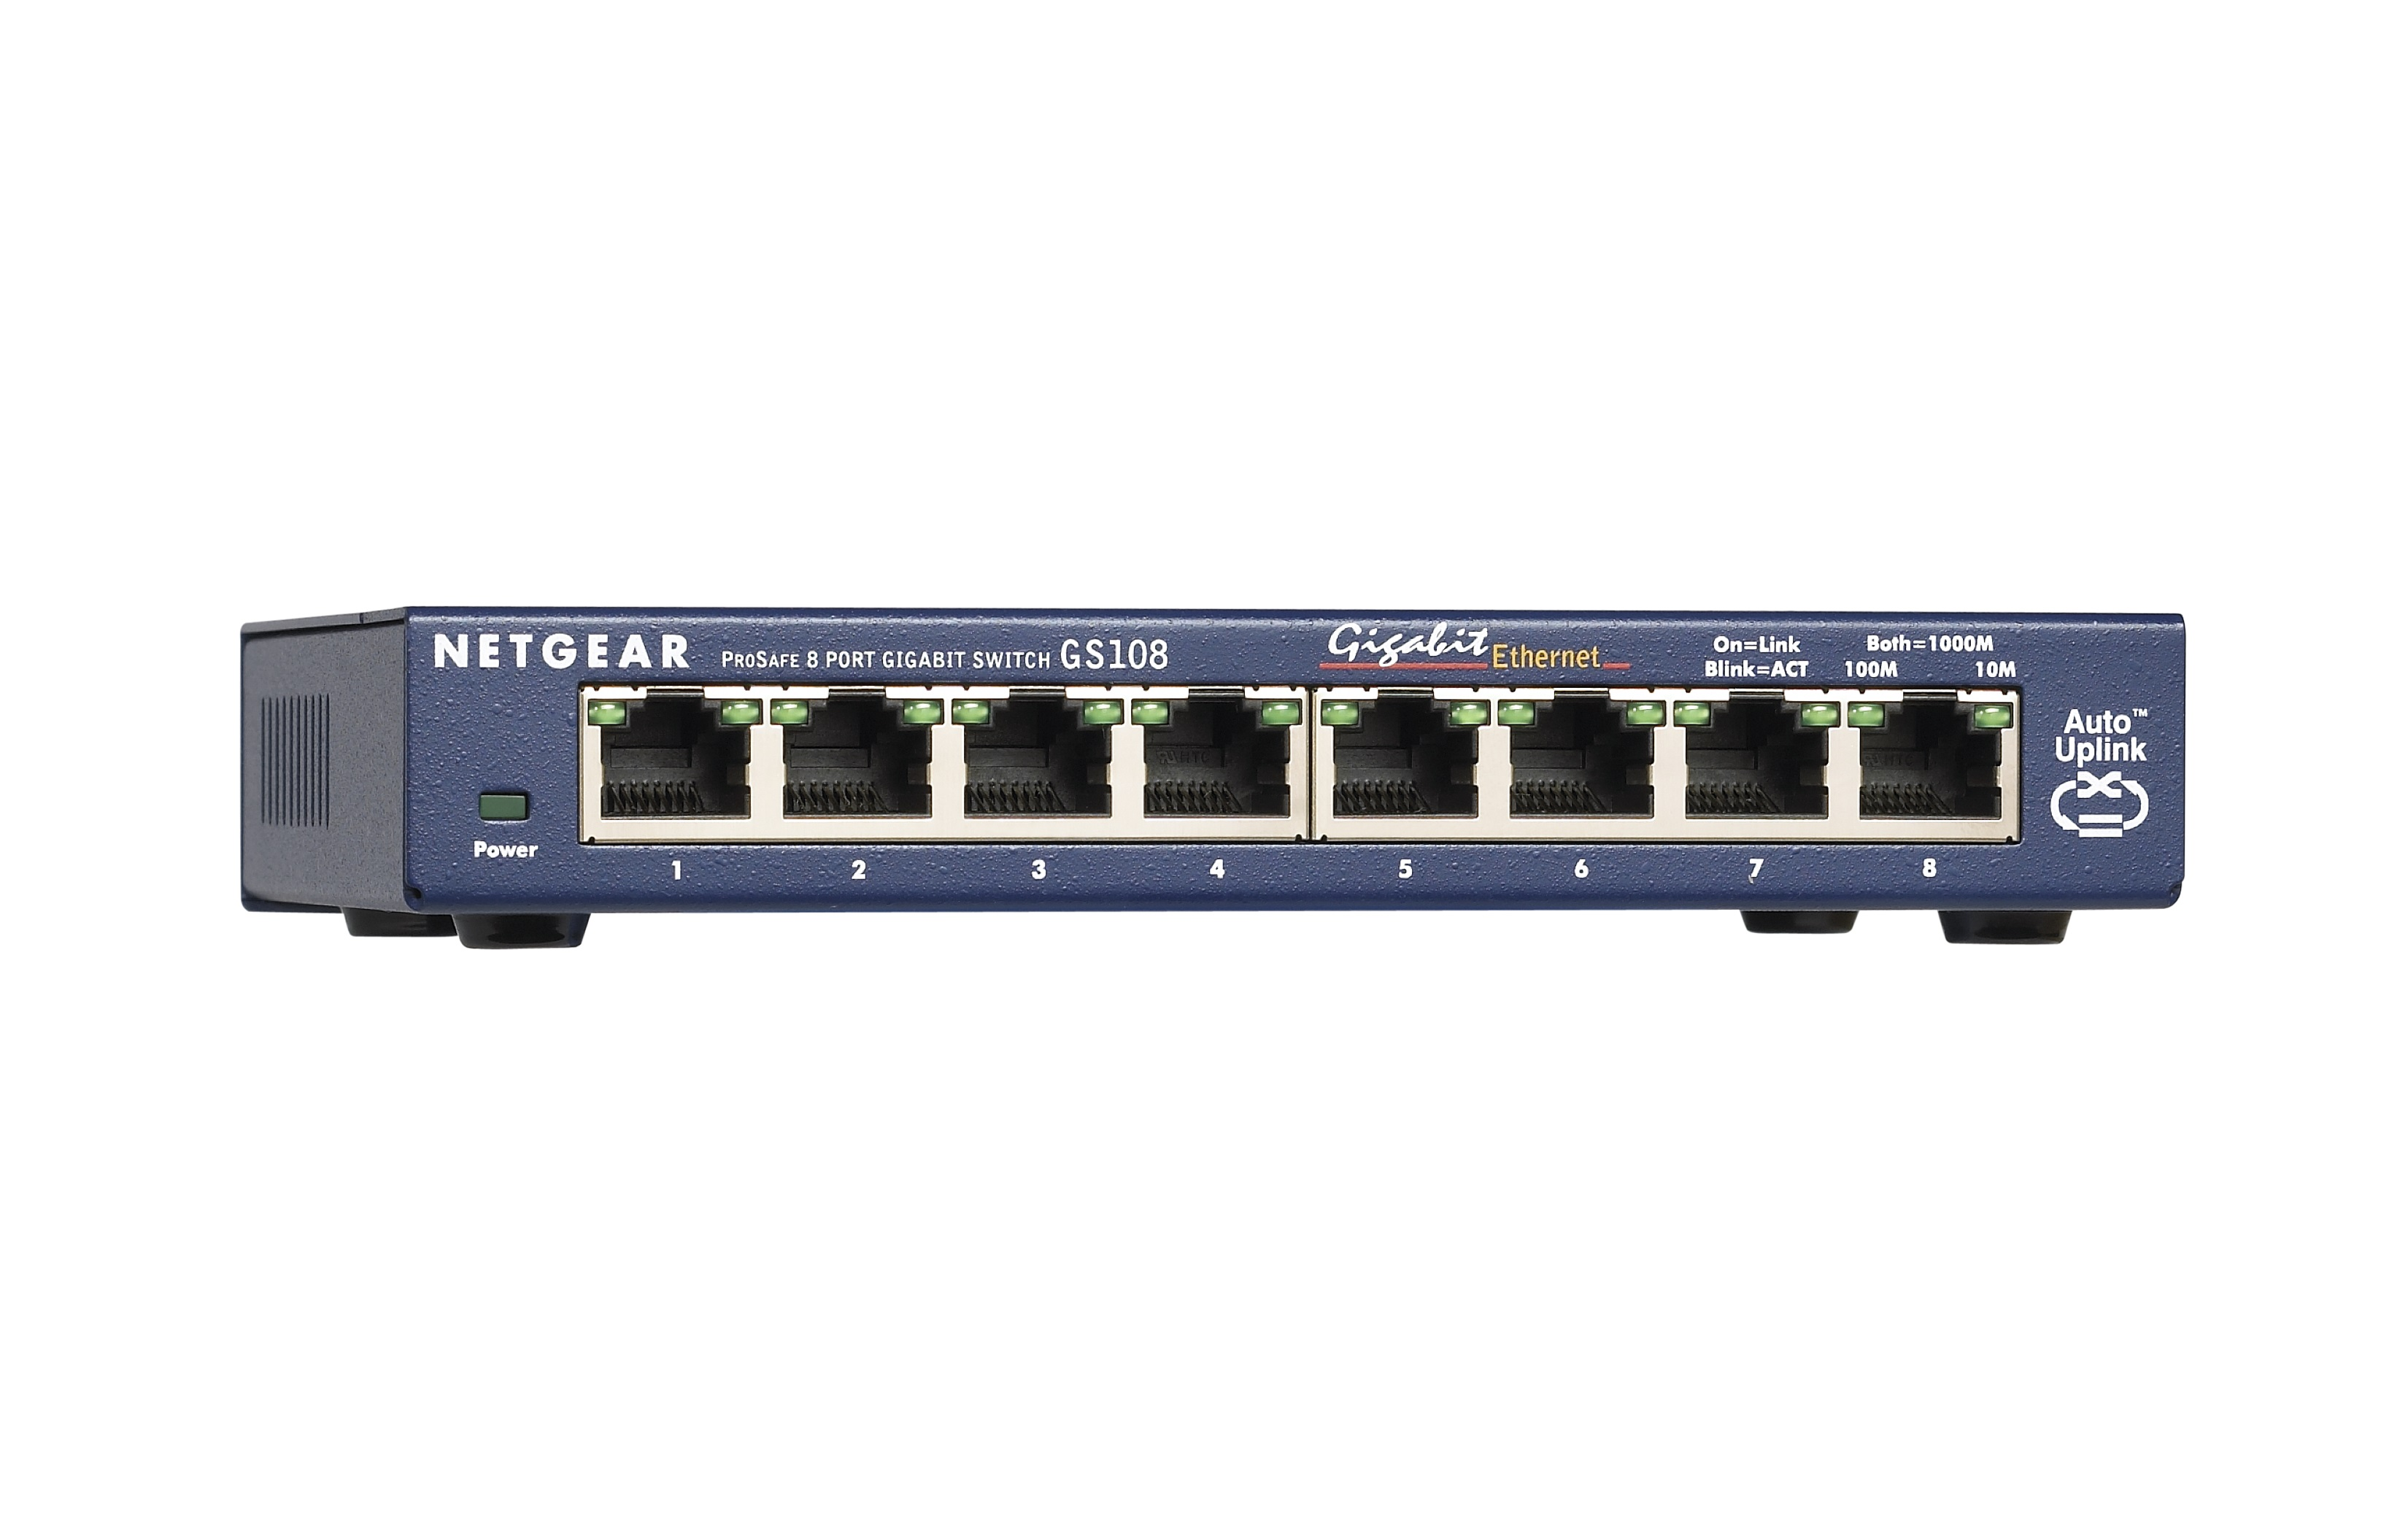 Netgear ProSafe 8 Port Gigabit Switch by NETGEAR